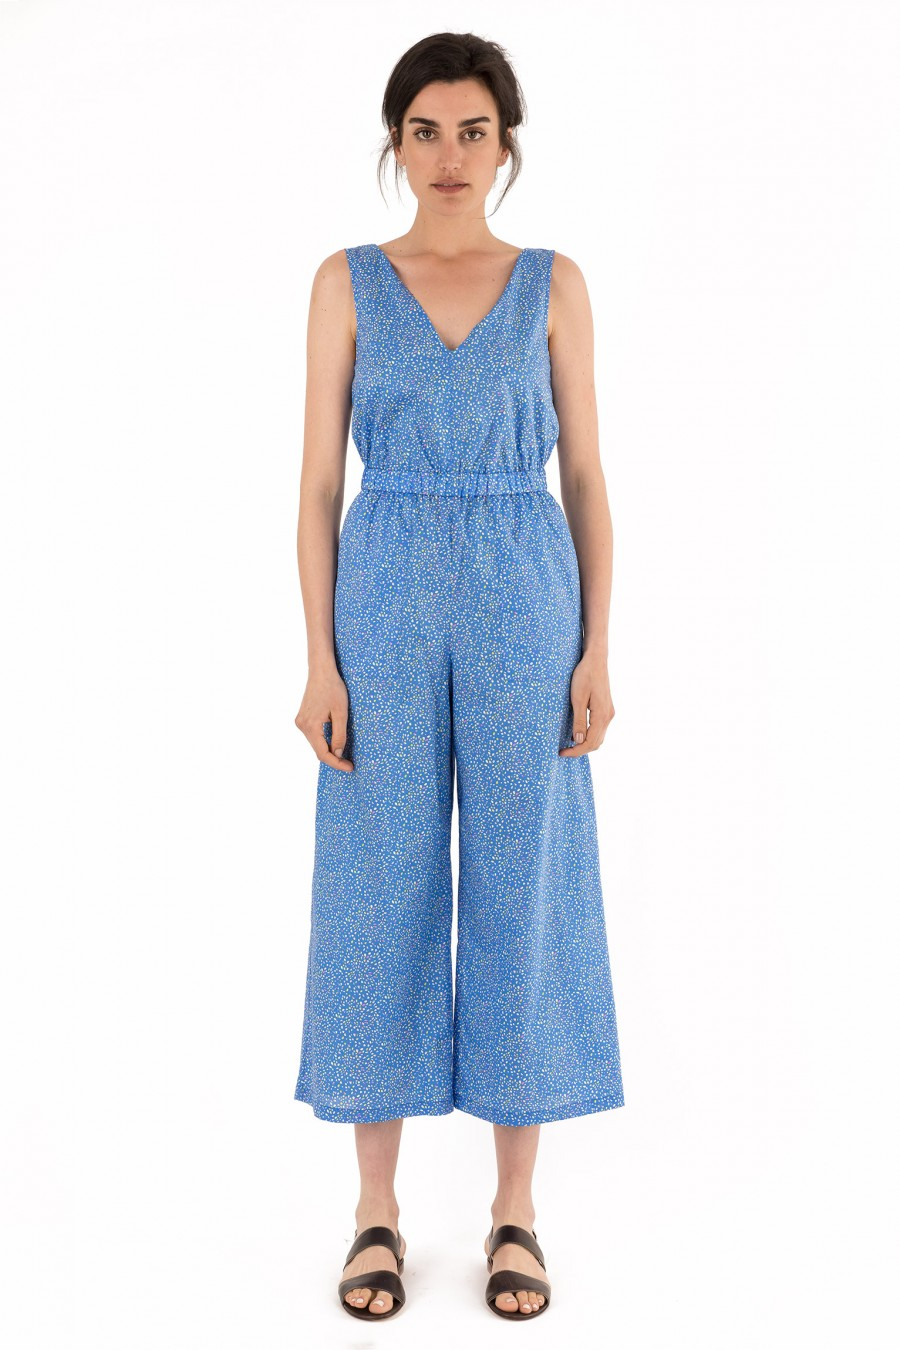 Liberty cotton overalls